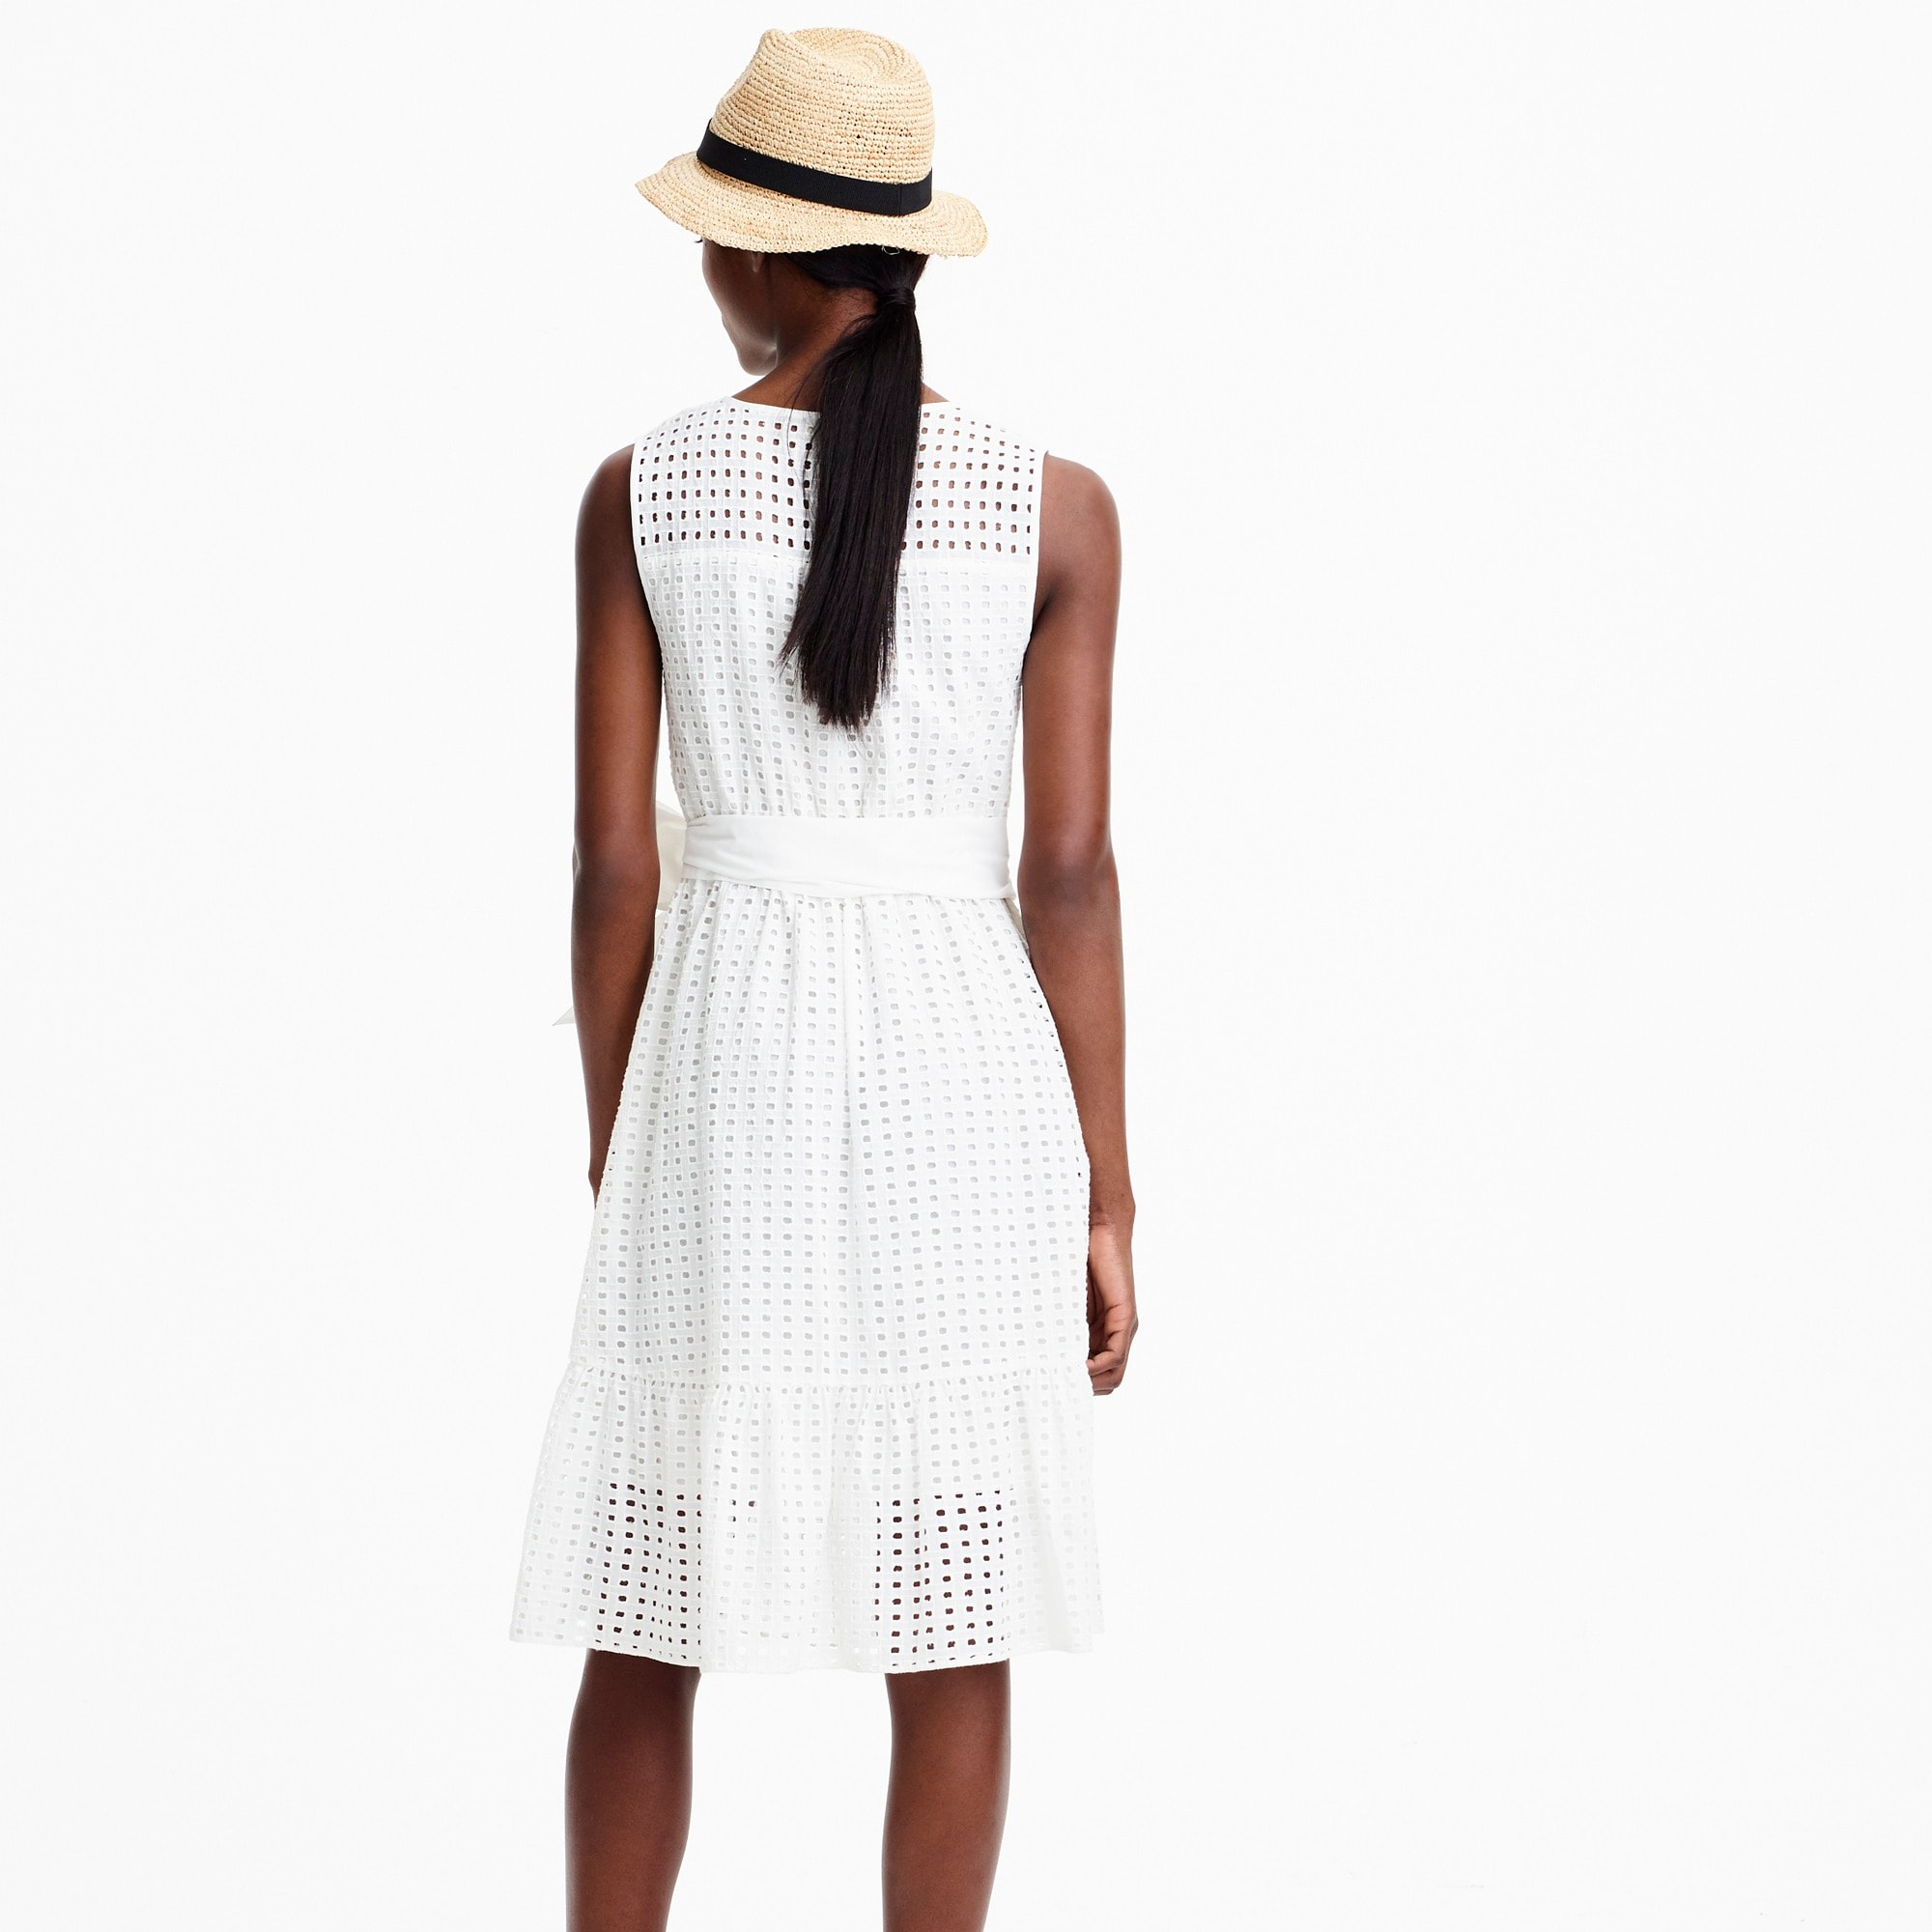 Image 4 for Petite all-over eyelet dress